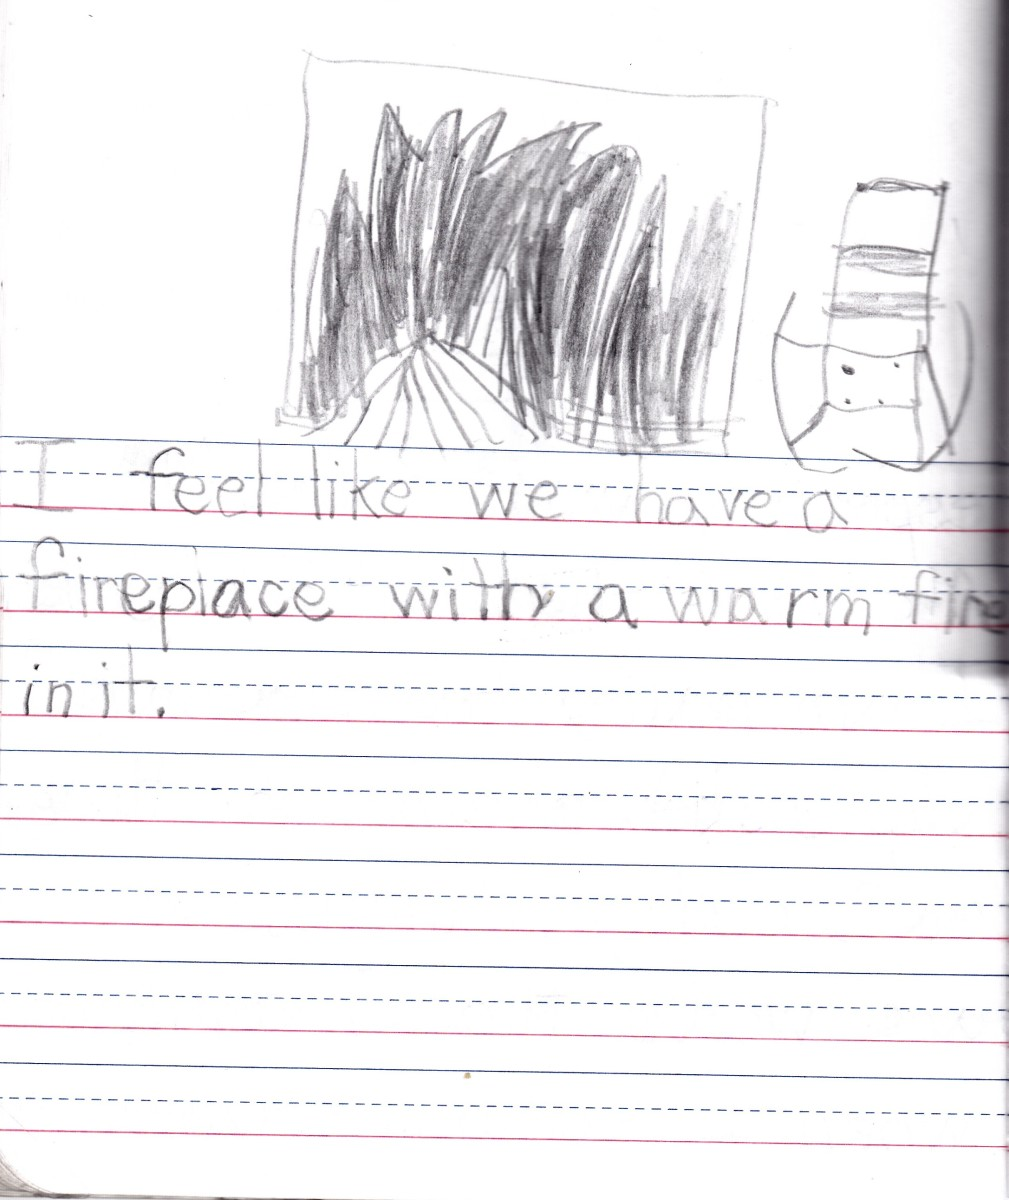 Page 3 of my daughter's journal entry about Chocolate Chip Cookies